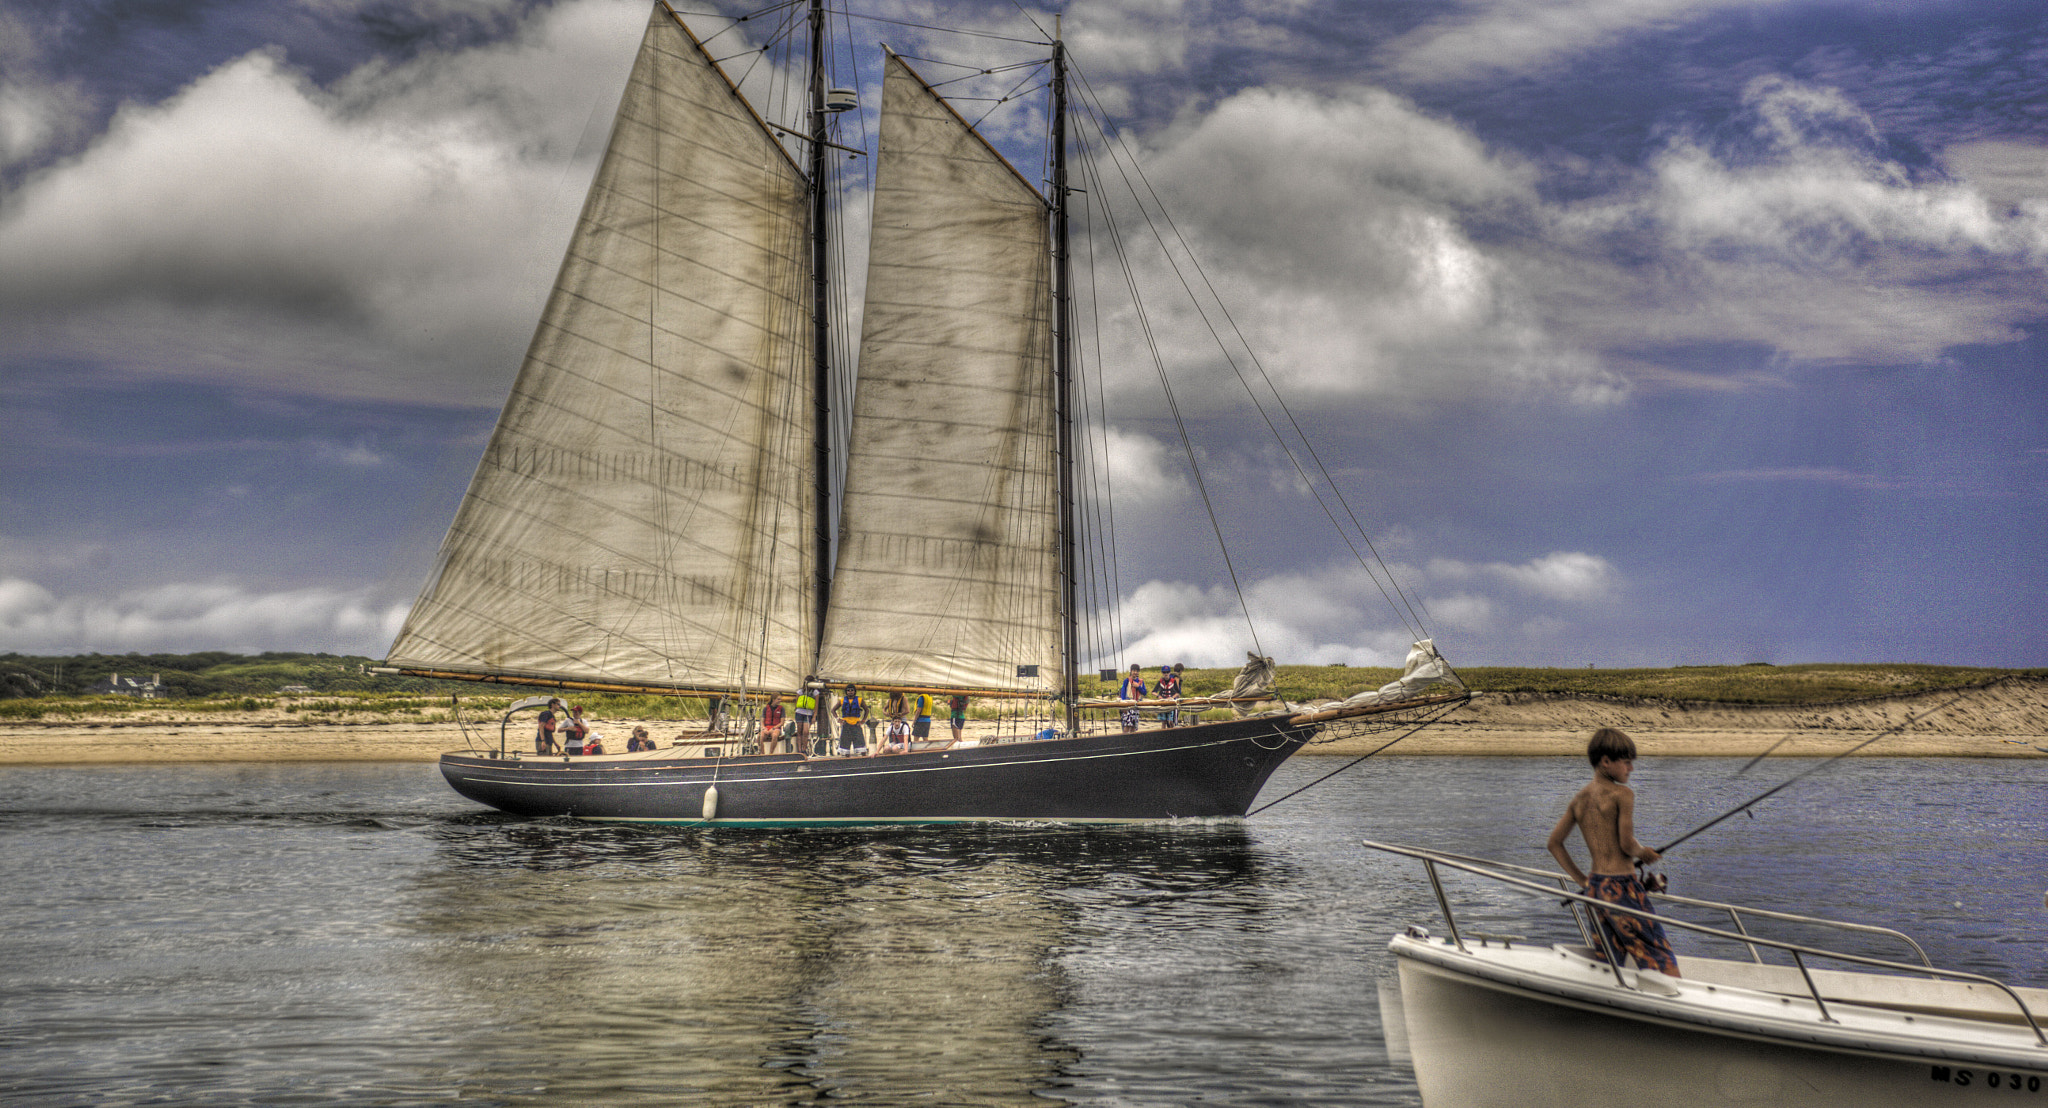 Photograph Outbound Schooner by Terry Letton on 500px